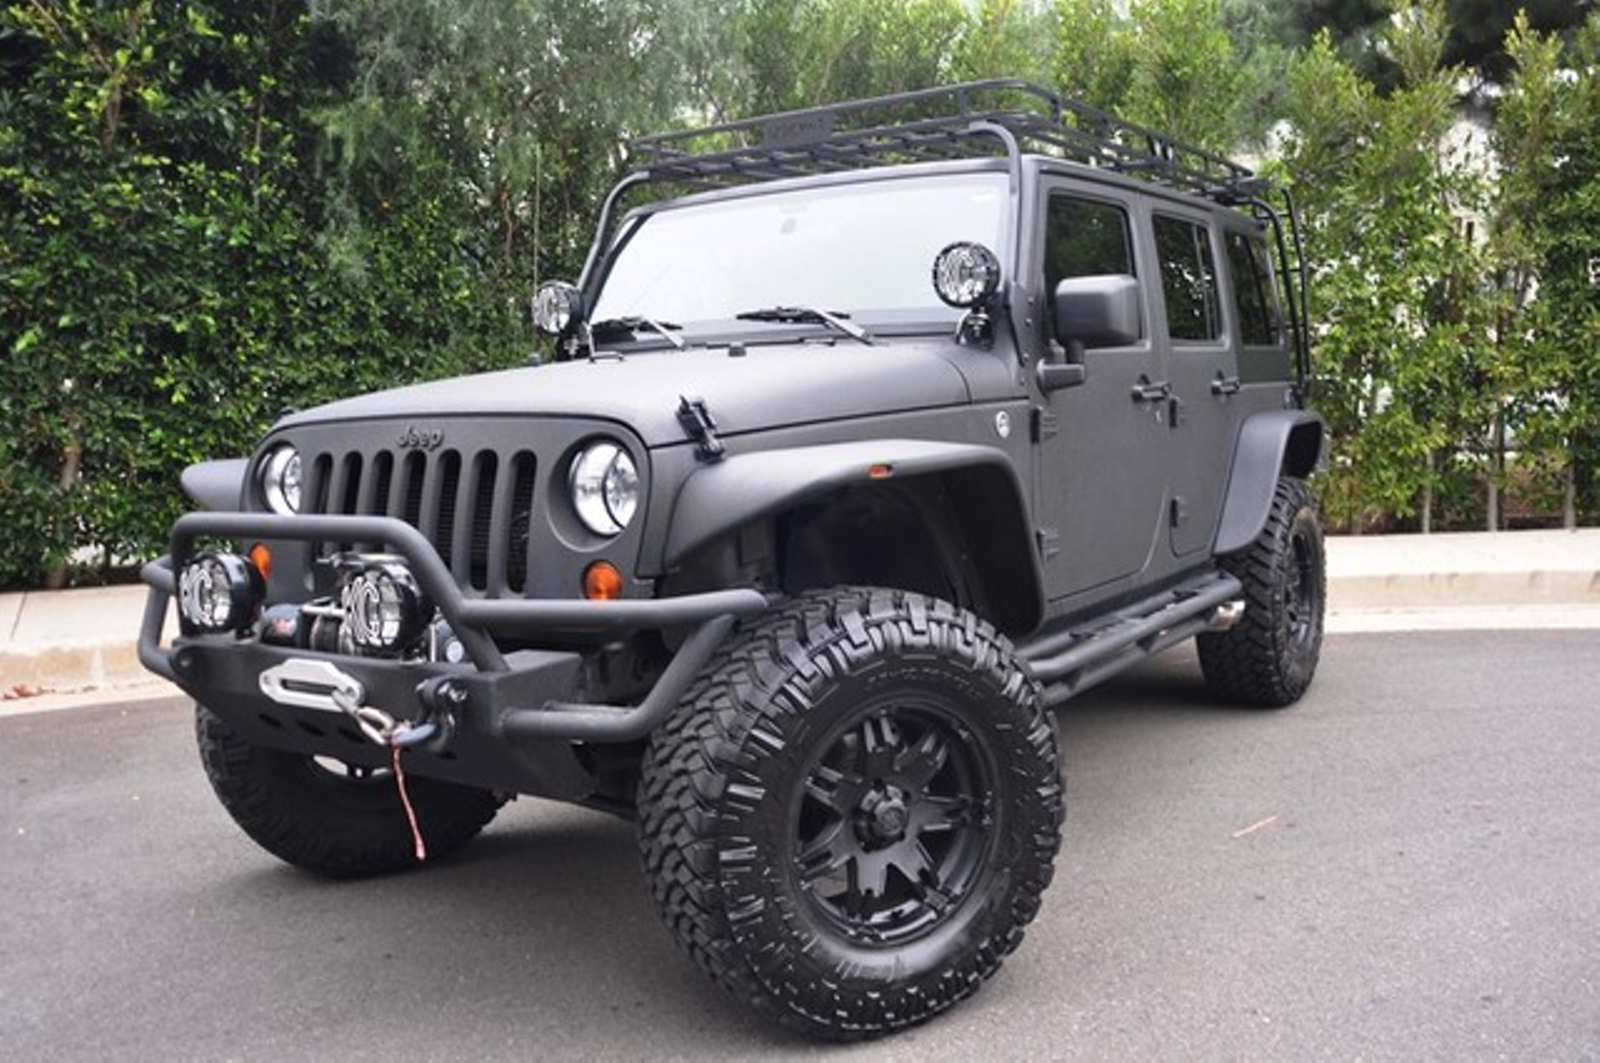 2012 Jeep Wrangler Unlimited Sport Conversion Great Mods Amazing Jeep city  California Auto Fitness Class Benz ...